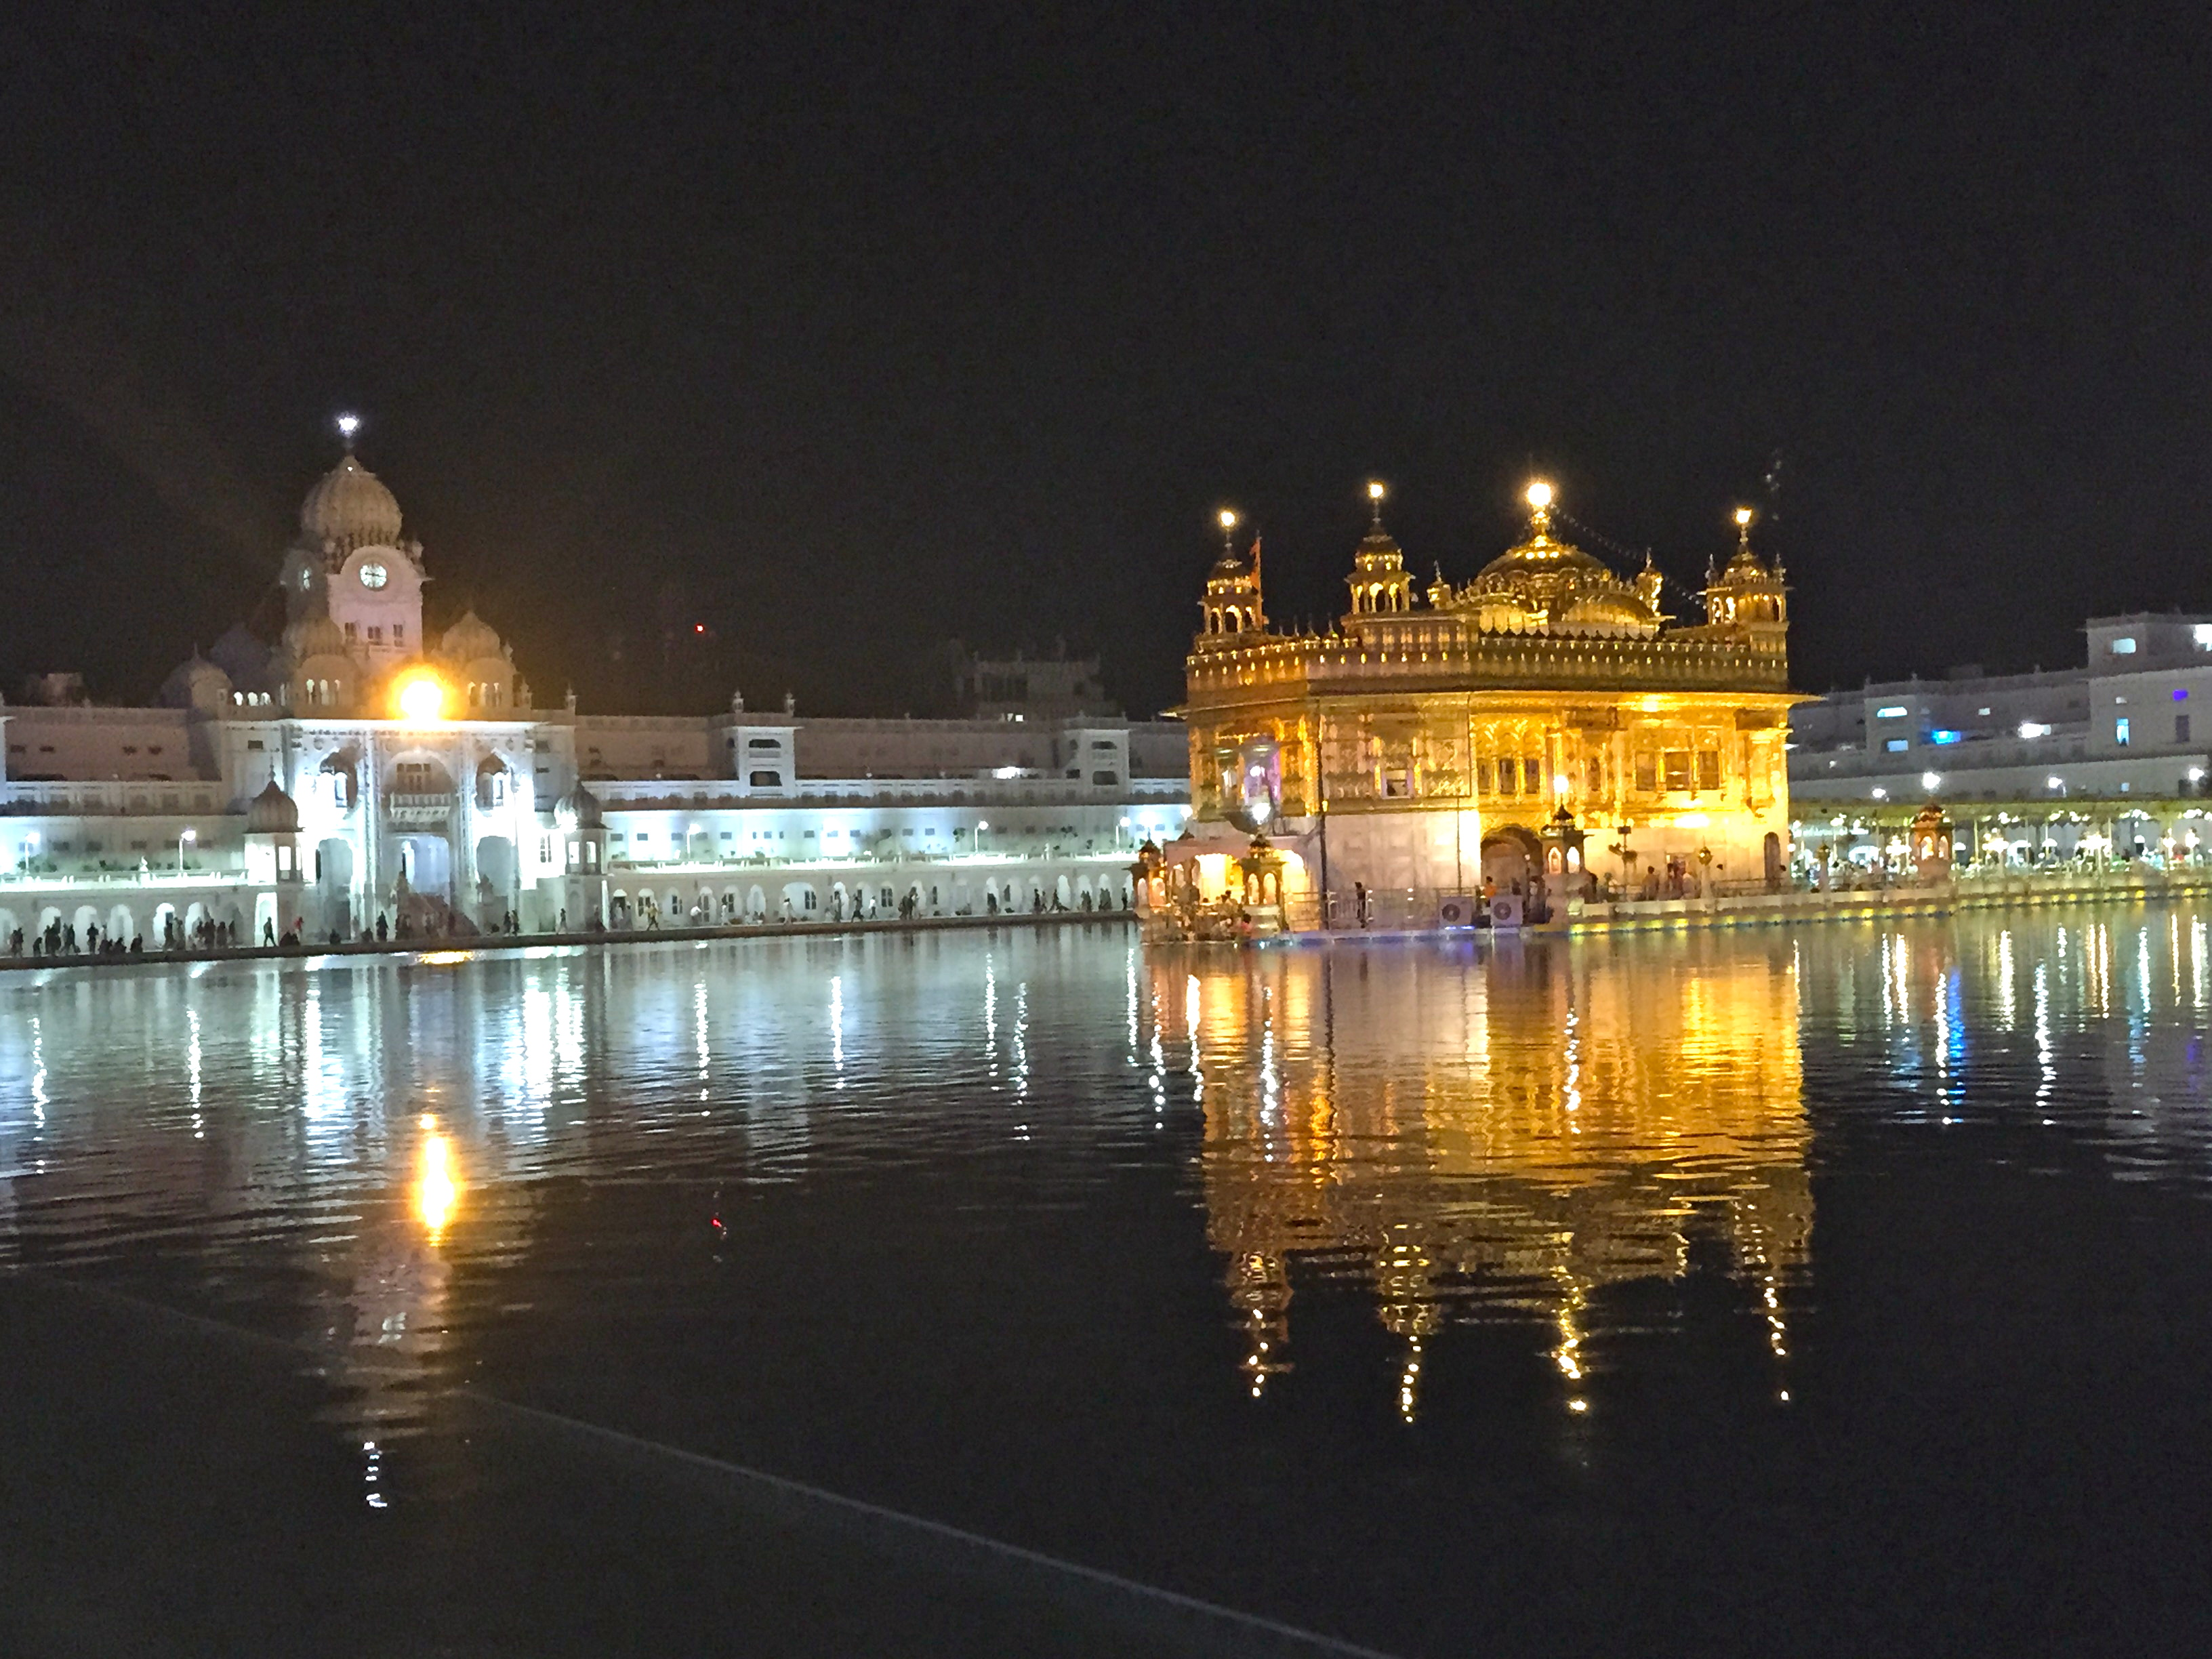 The Golden Temple – Among the Most Positive Places in the World